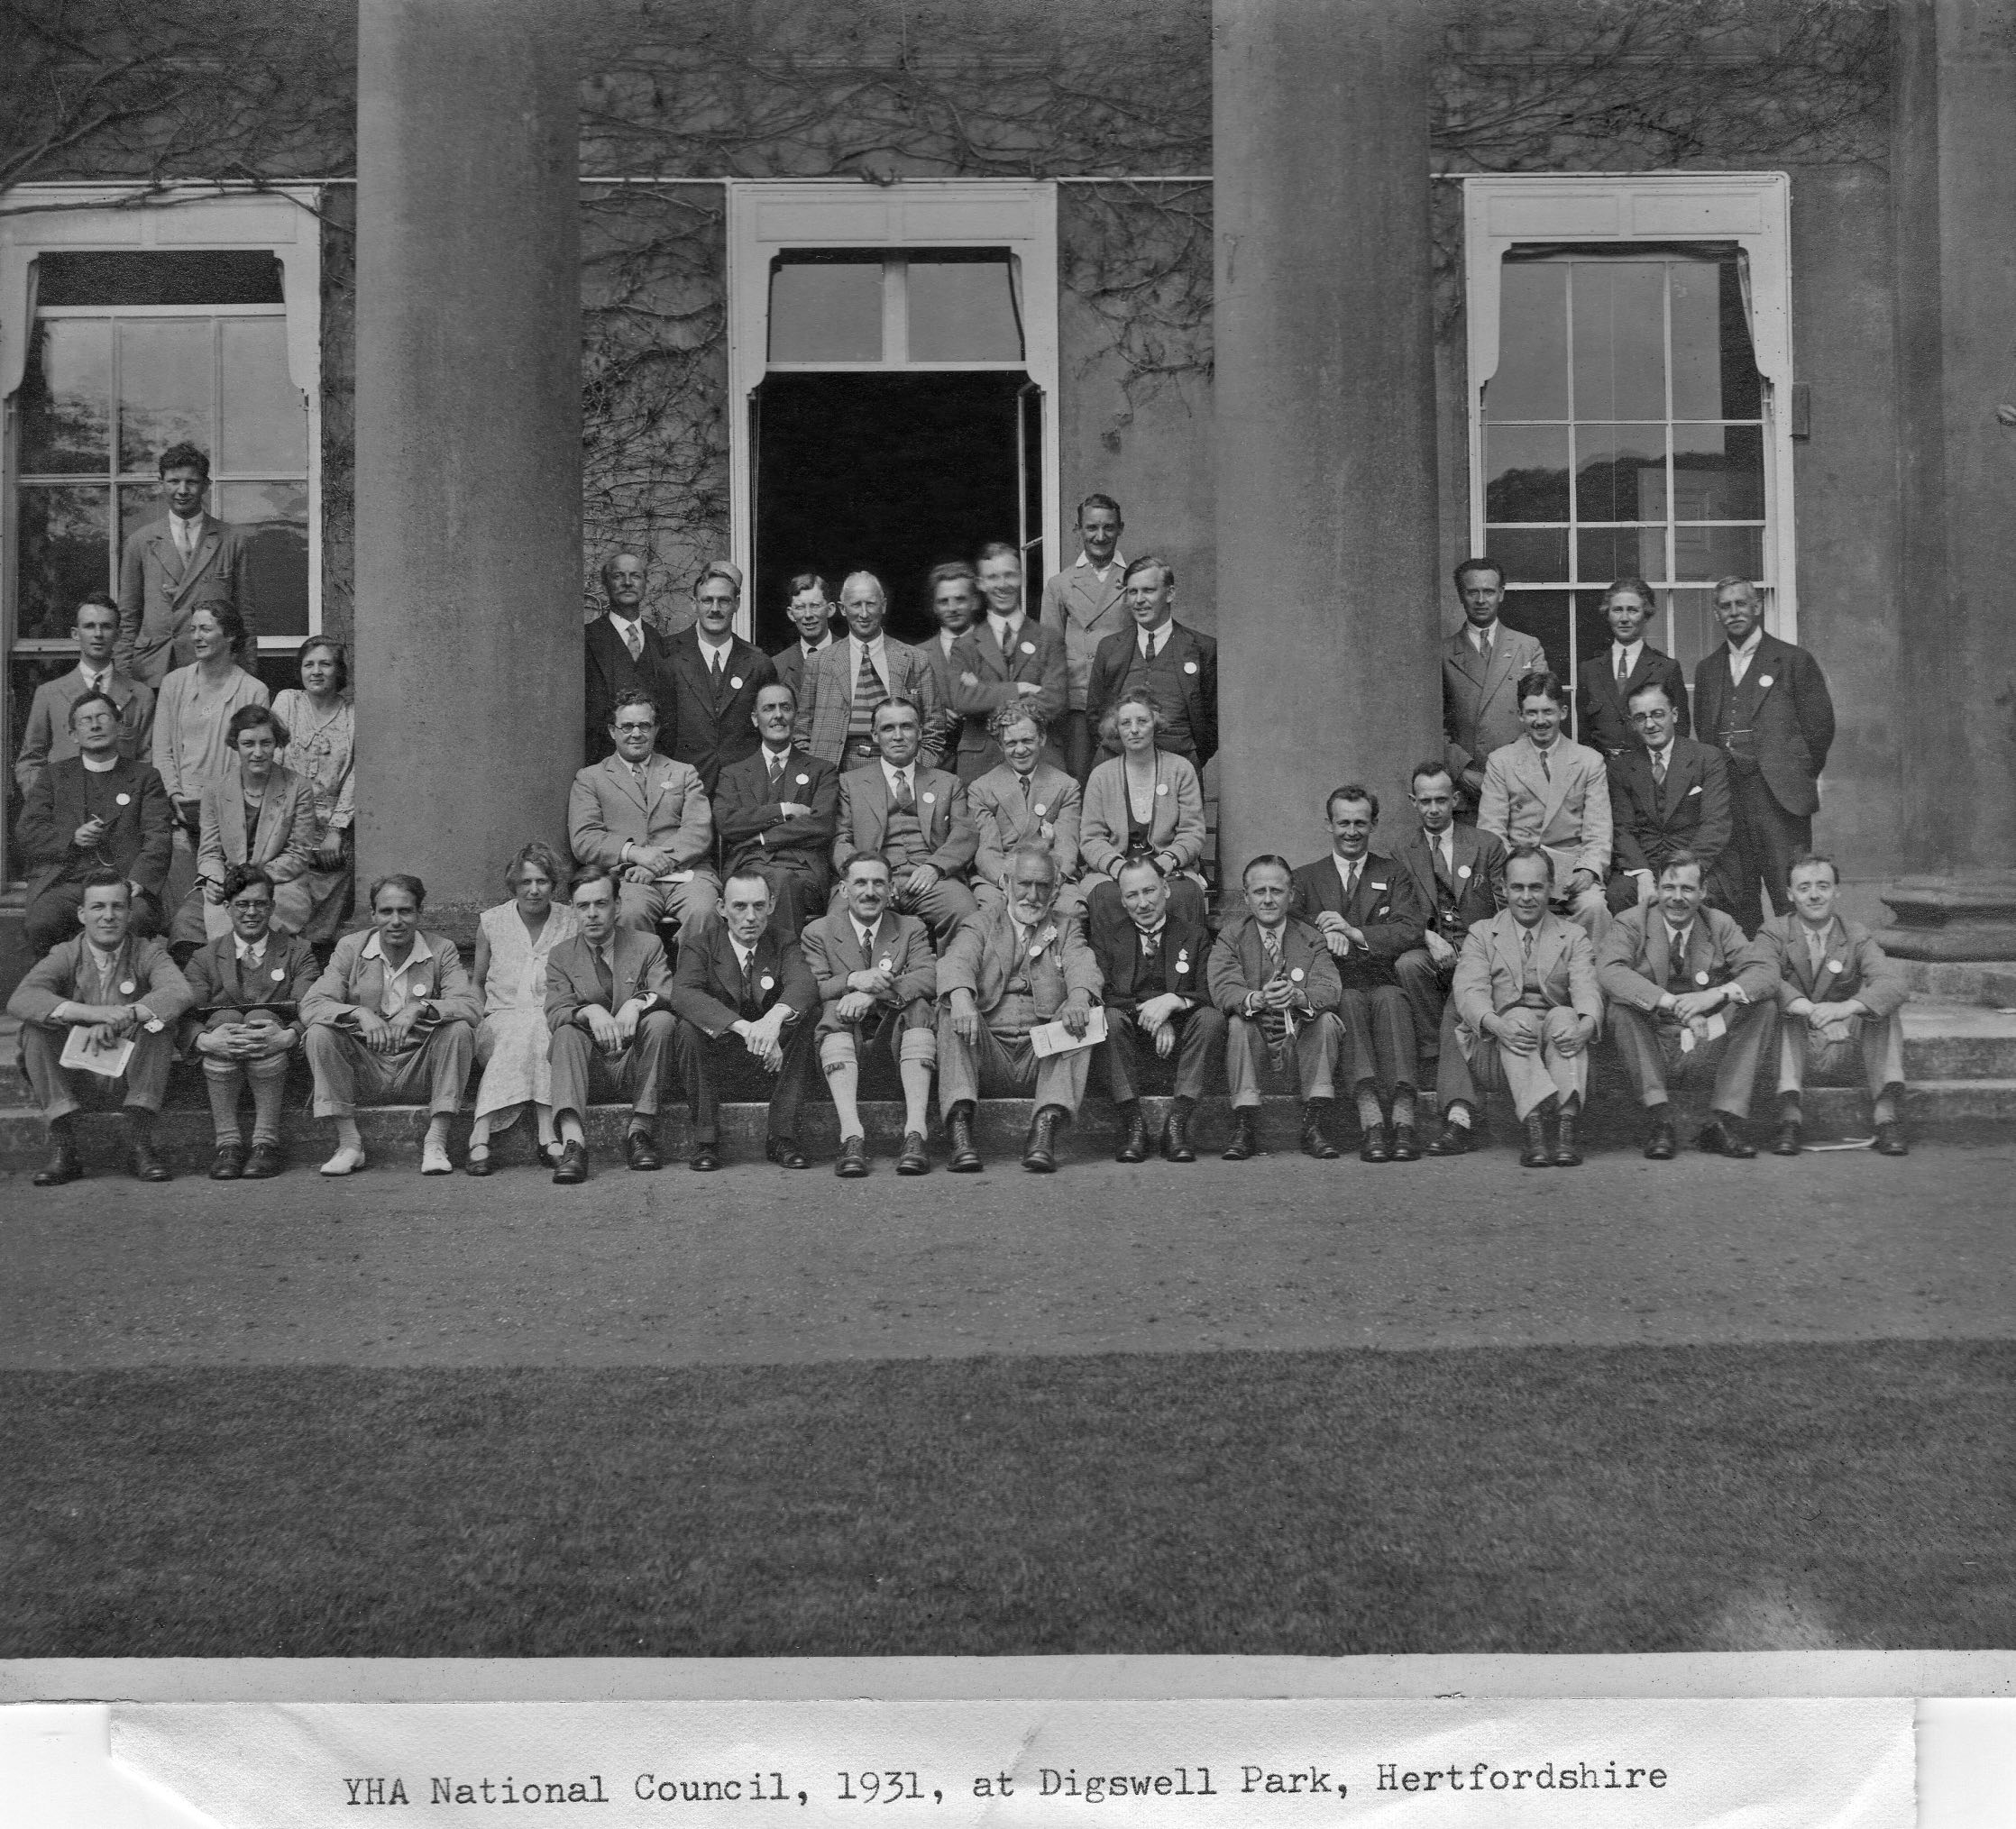 YHA Natiional Council 1932